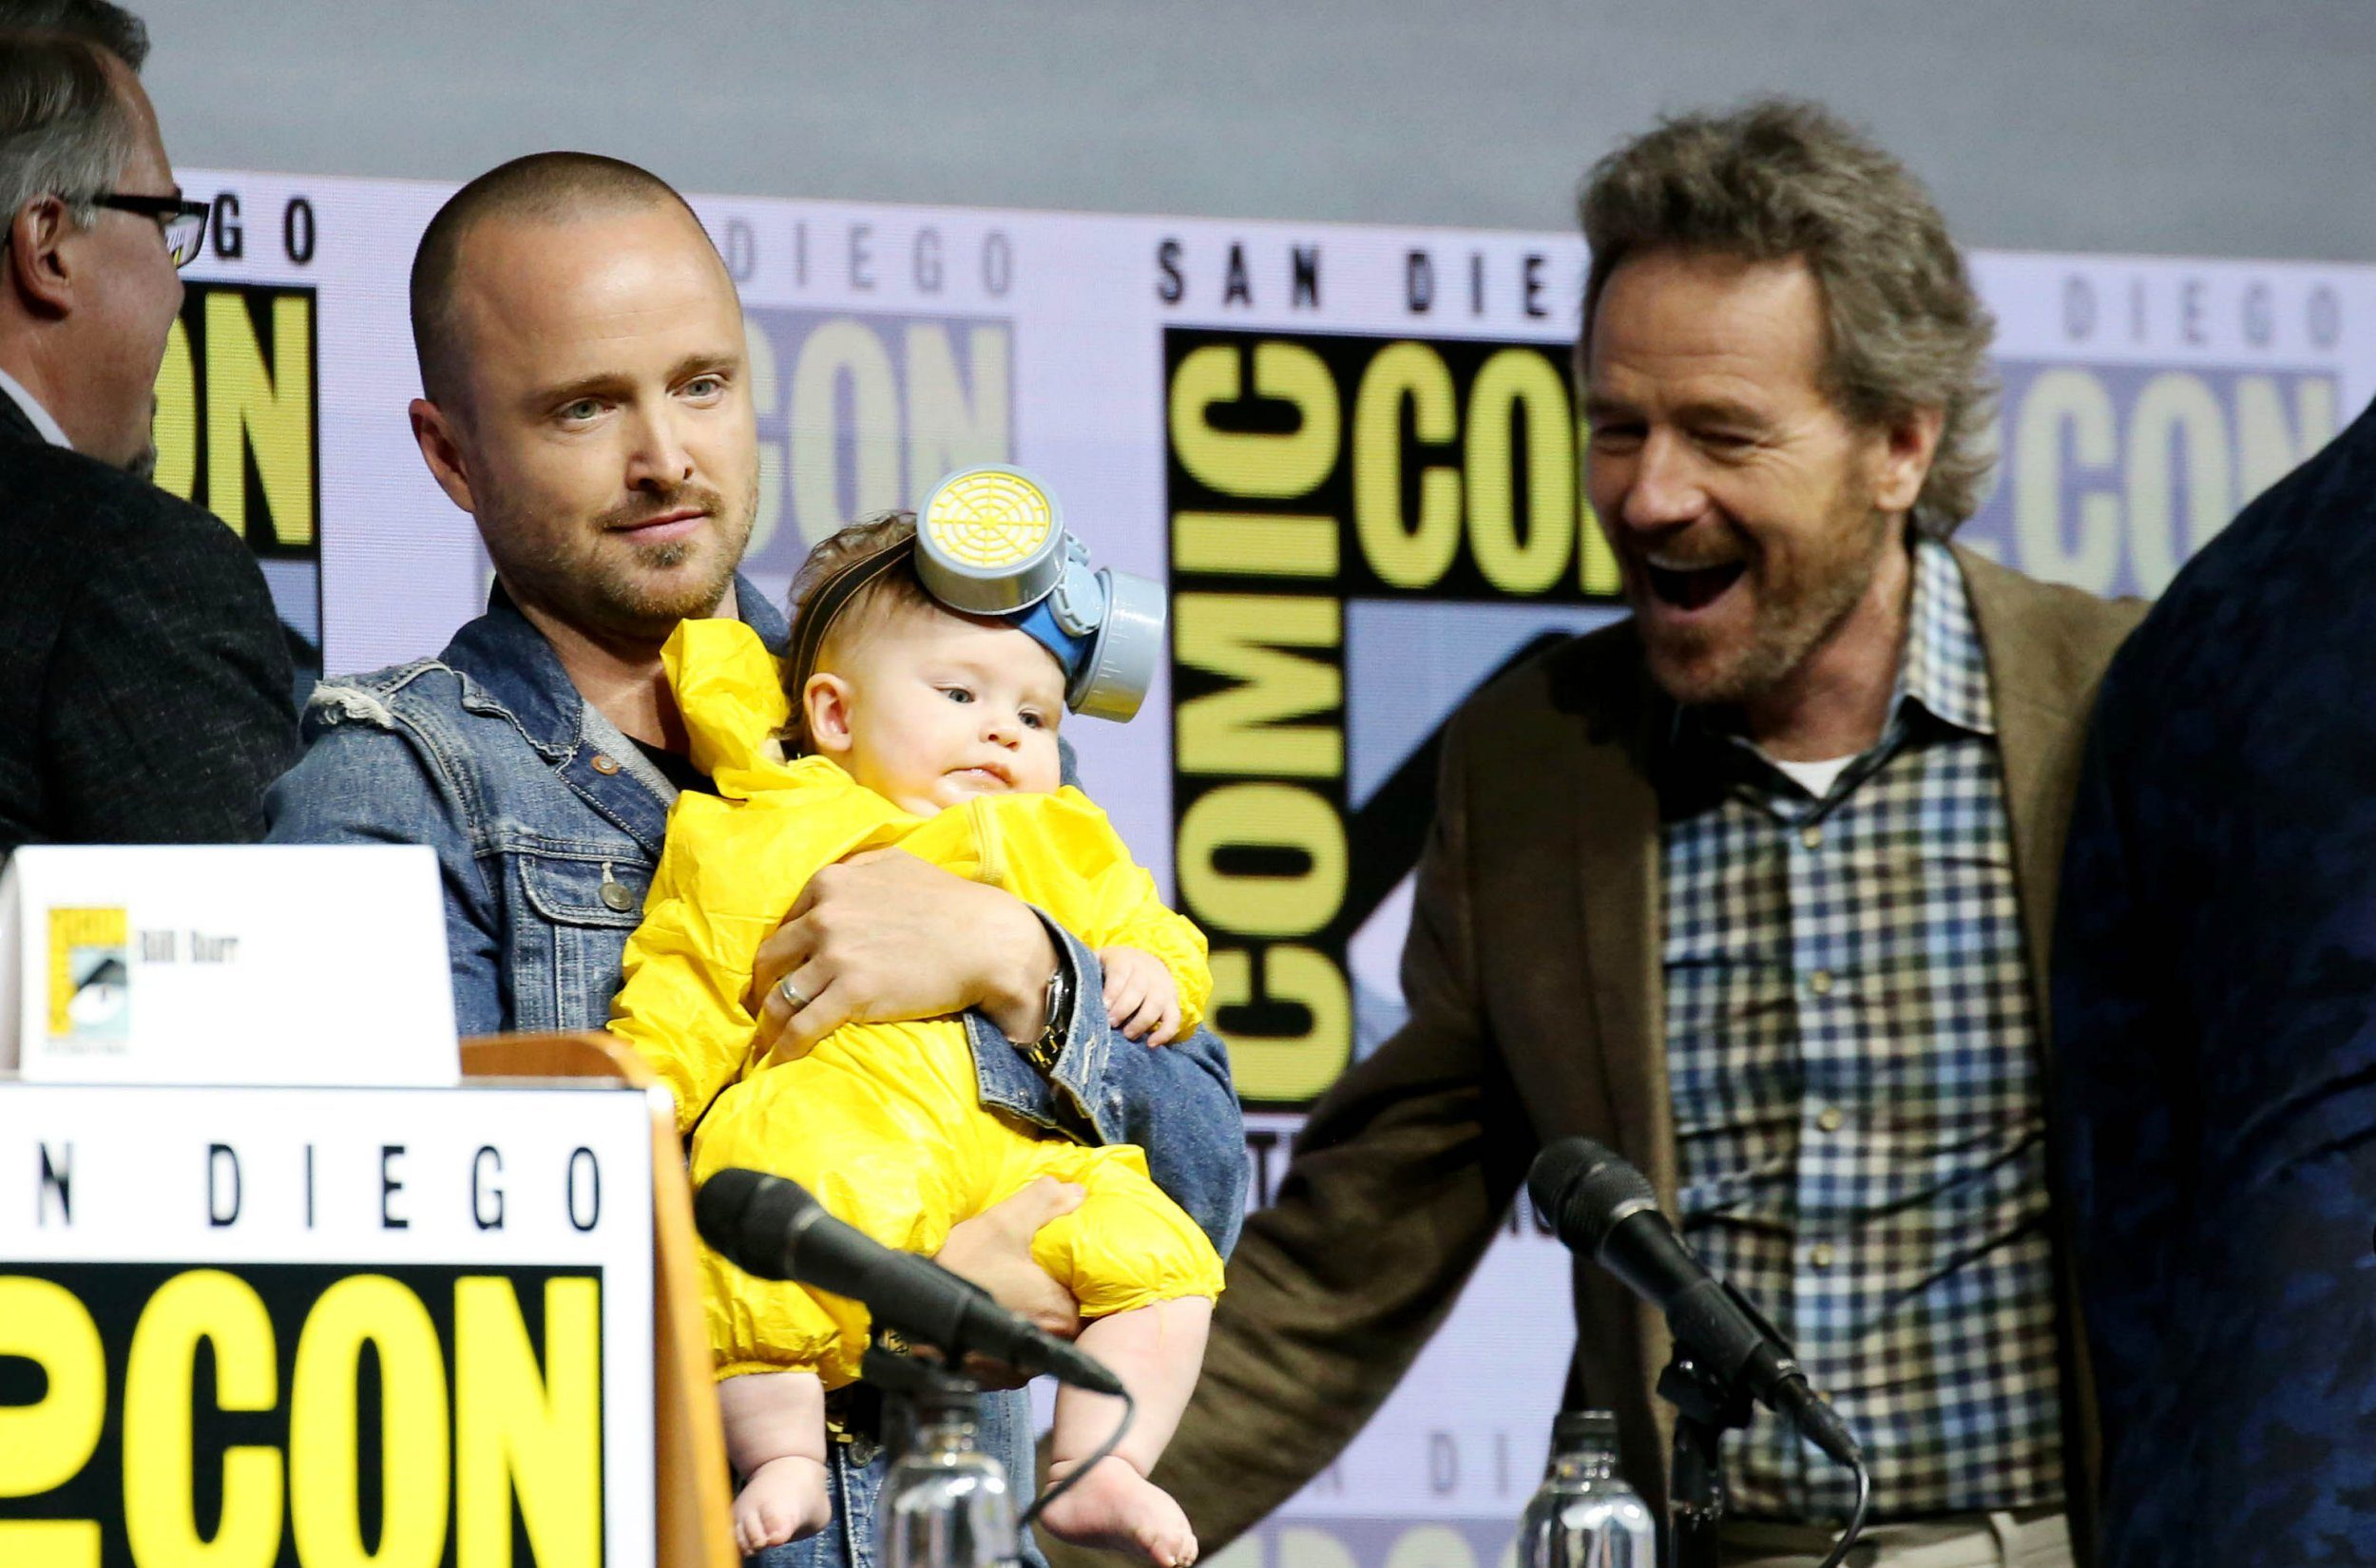 Aaron Paul brings his baby daughter to Comic Con as a little Heisenberg – as Breaking Bad cast discuss on-screen reunions